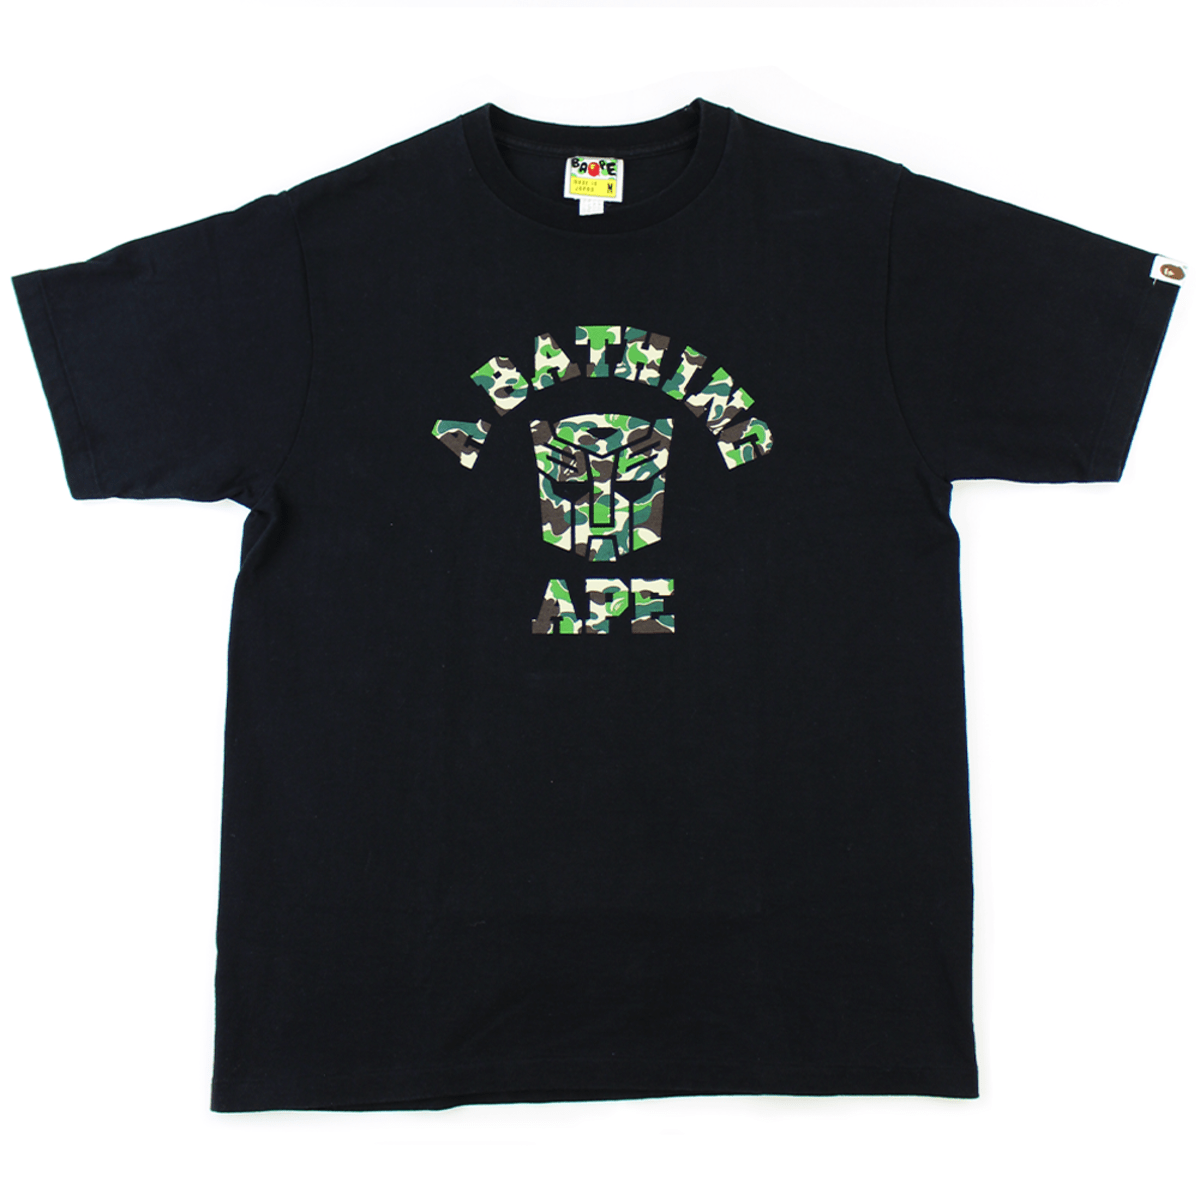 Bape x Transformers ABC Green Camo College Logo Tee Black - SaruGeneral